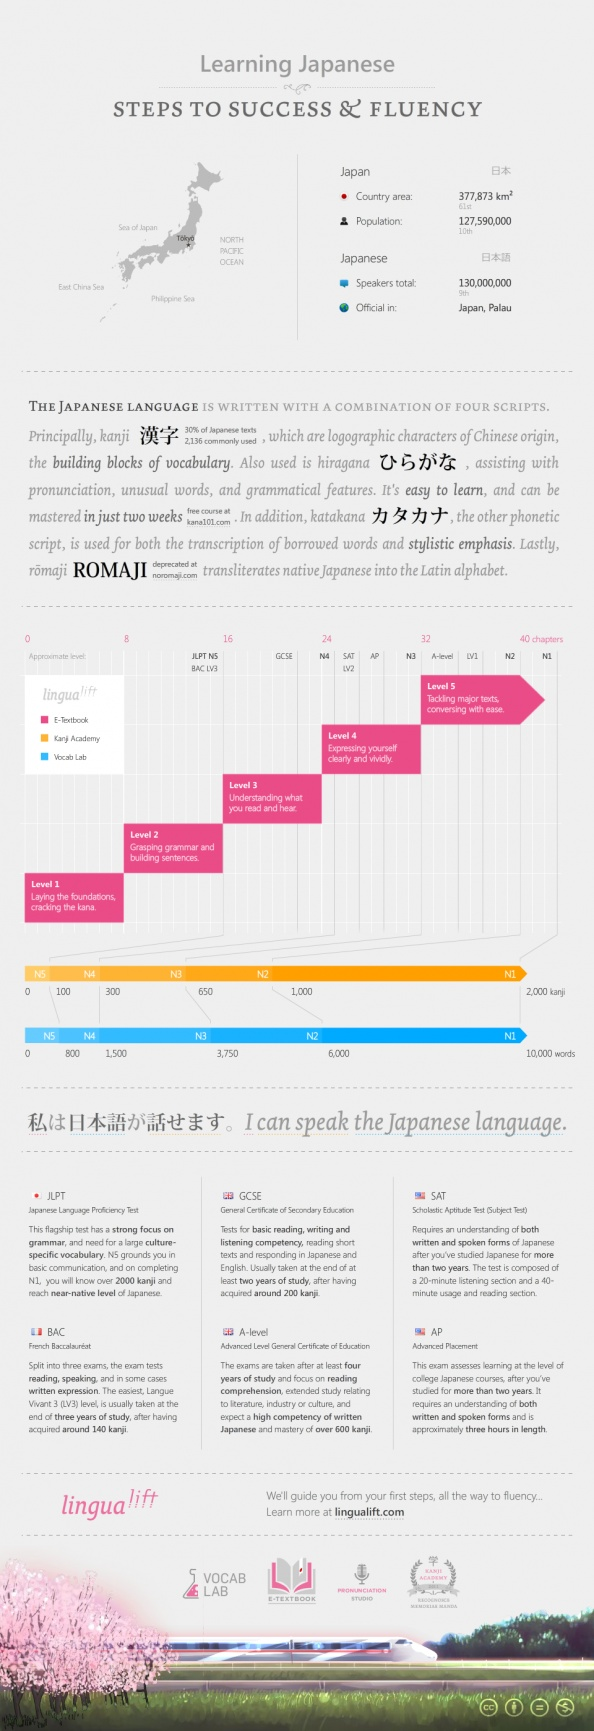 99 best infographic sheets images on pinterest health health learning japanese steps to success fluency infographic fandeluxe Choice Image